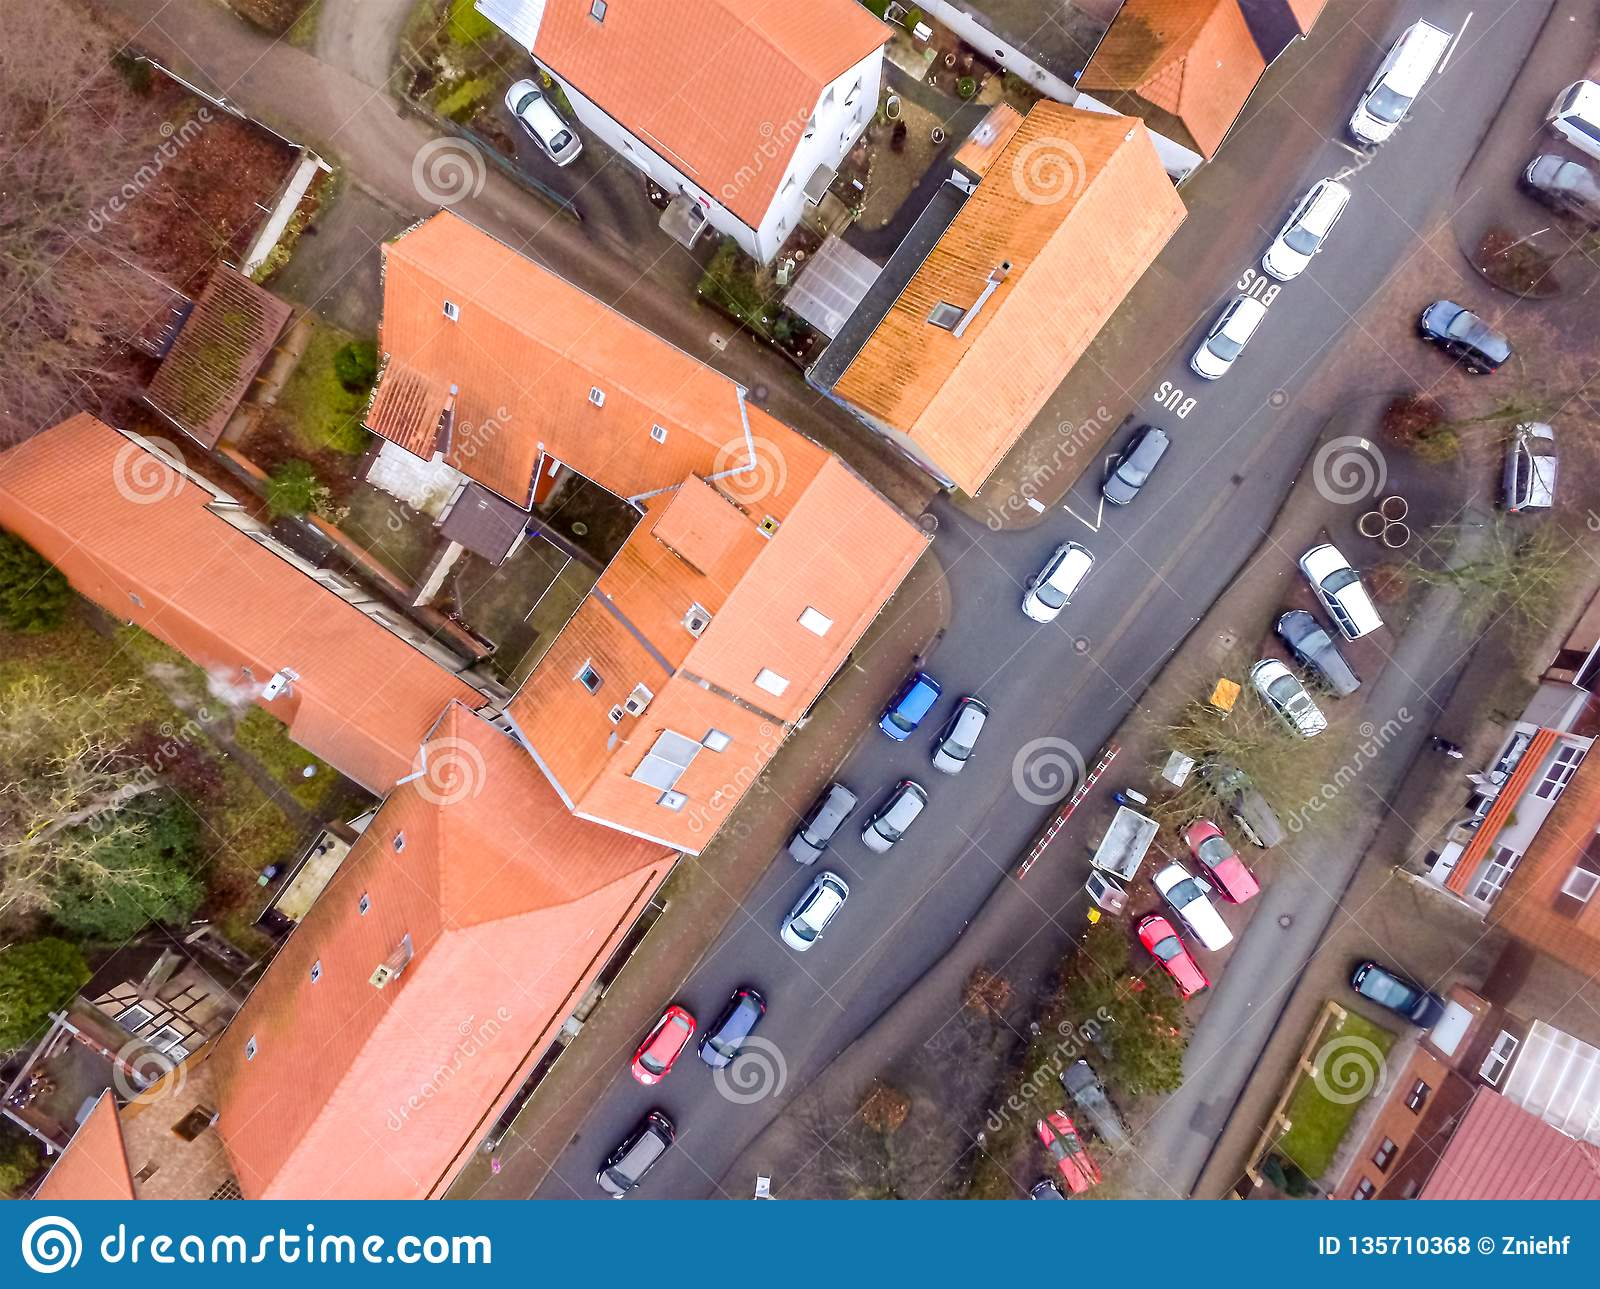 Vertical aerial photo of the main street in a suburb with terraced houses and many cars